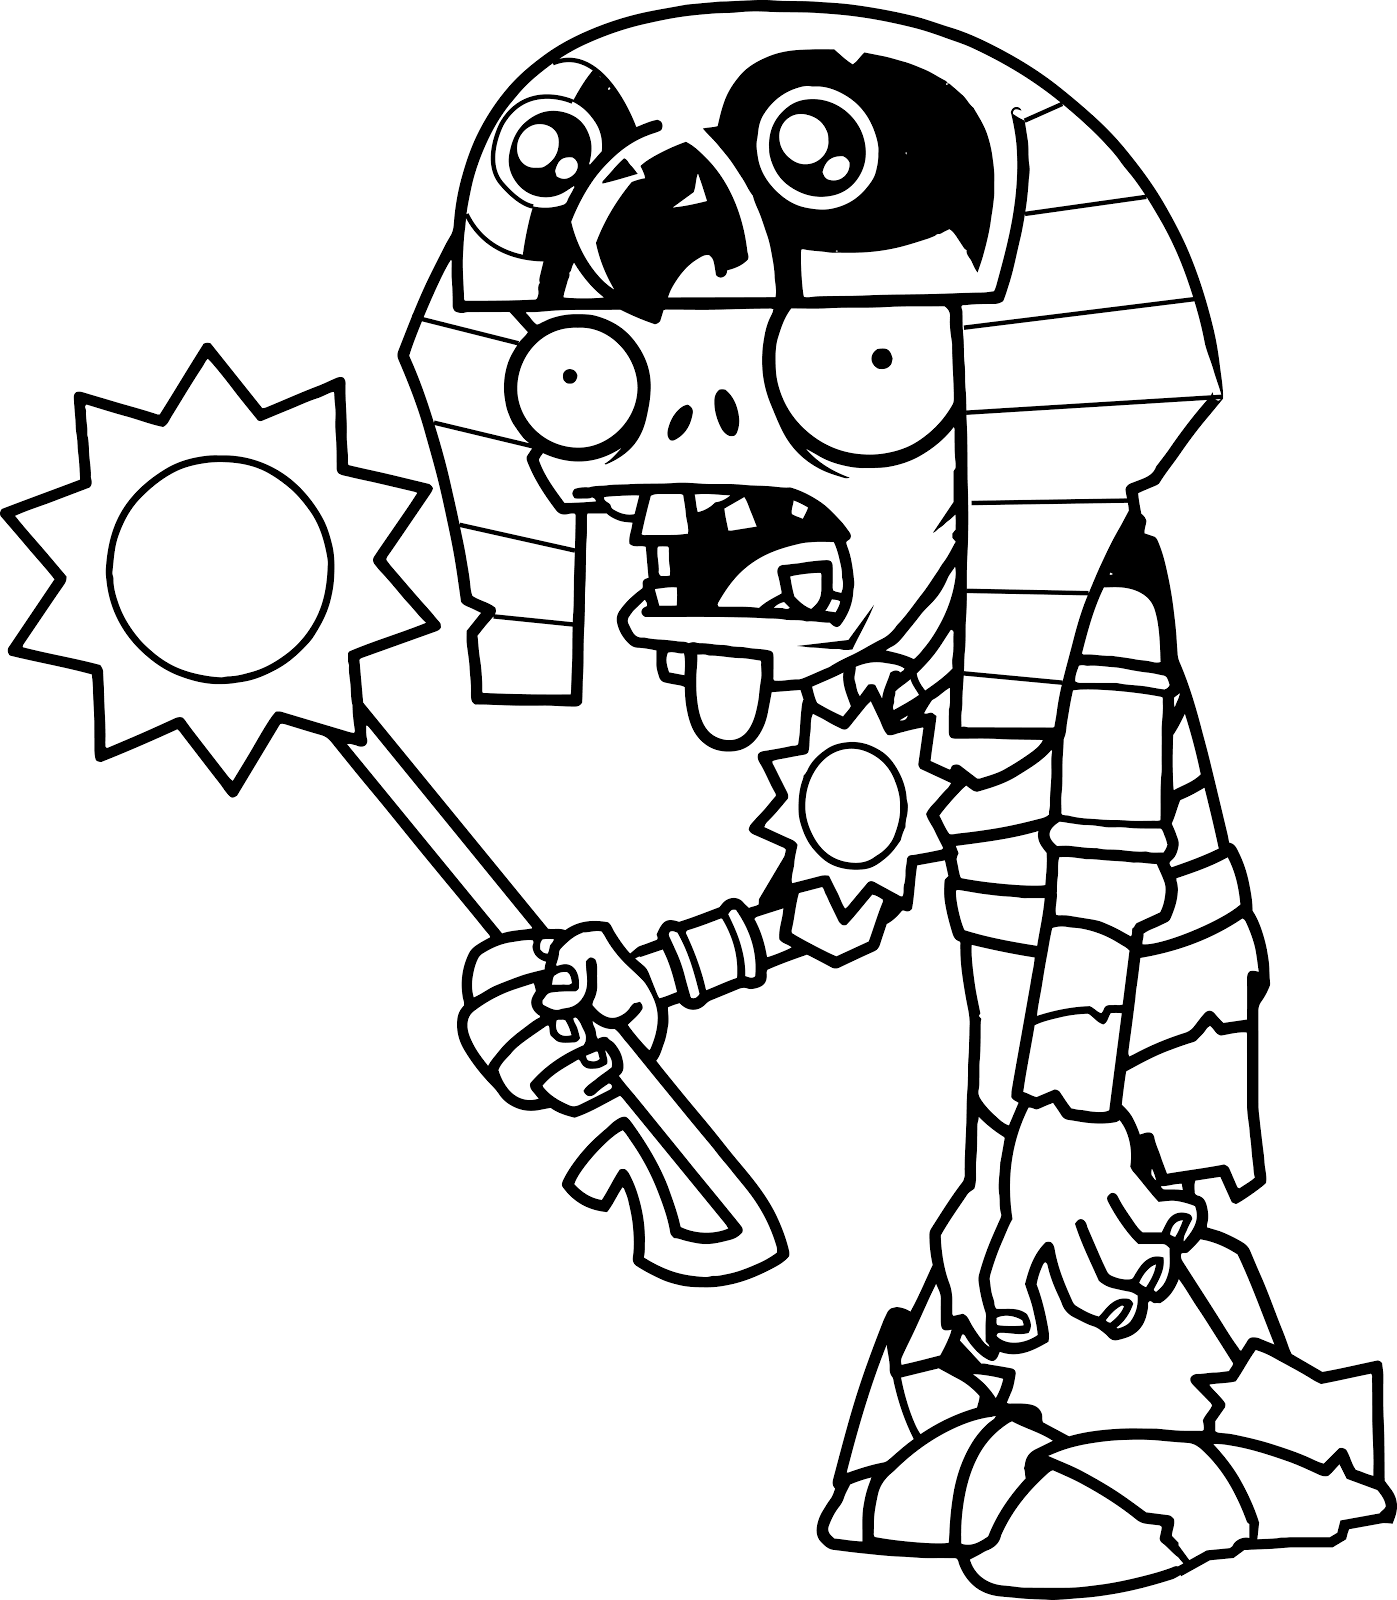 Original Coloring Pages Plants Vs Zombies 2 Egyptian Pharaoh Zombie